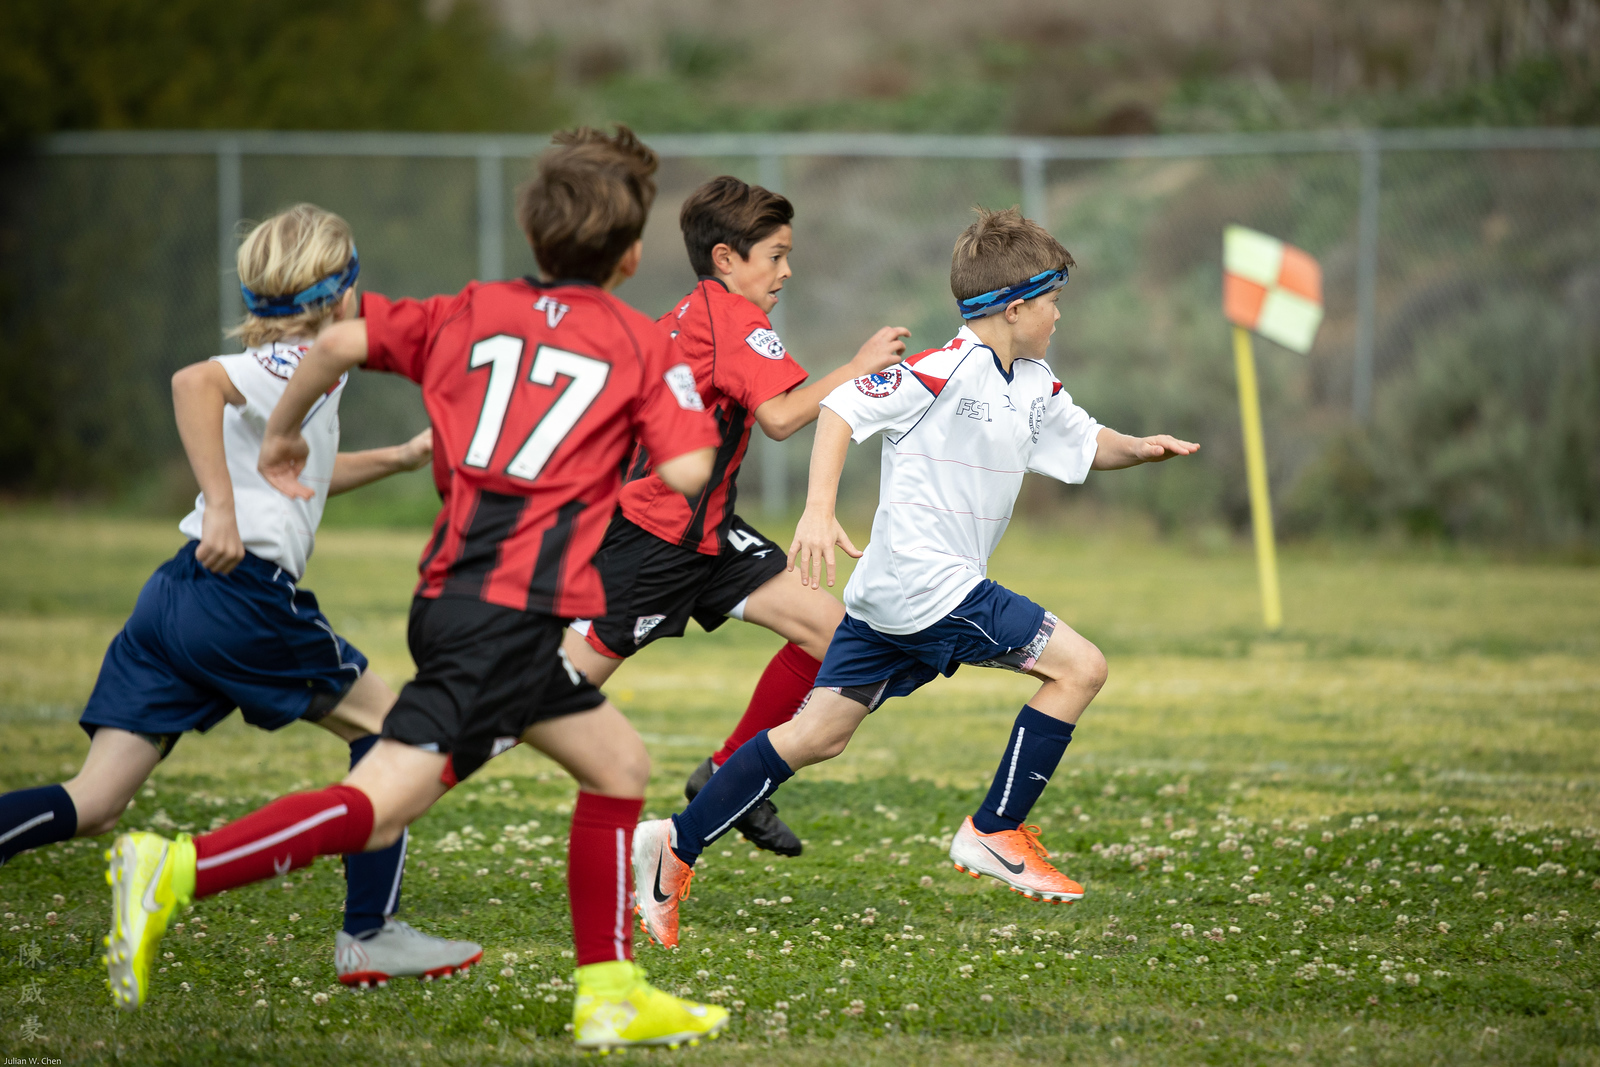 IMAGE: https://photos.smugmug.com/Photography/Sports/2020-AYSO-Renegades/i-H9nfcqW/0/2b653d45/X3/20200223-Canon%20EOS-1D%20X%20Mark%20III-1DX30325-X3.jpg